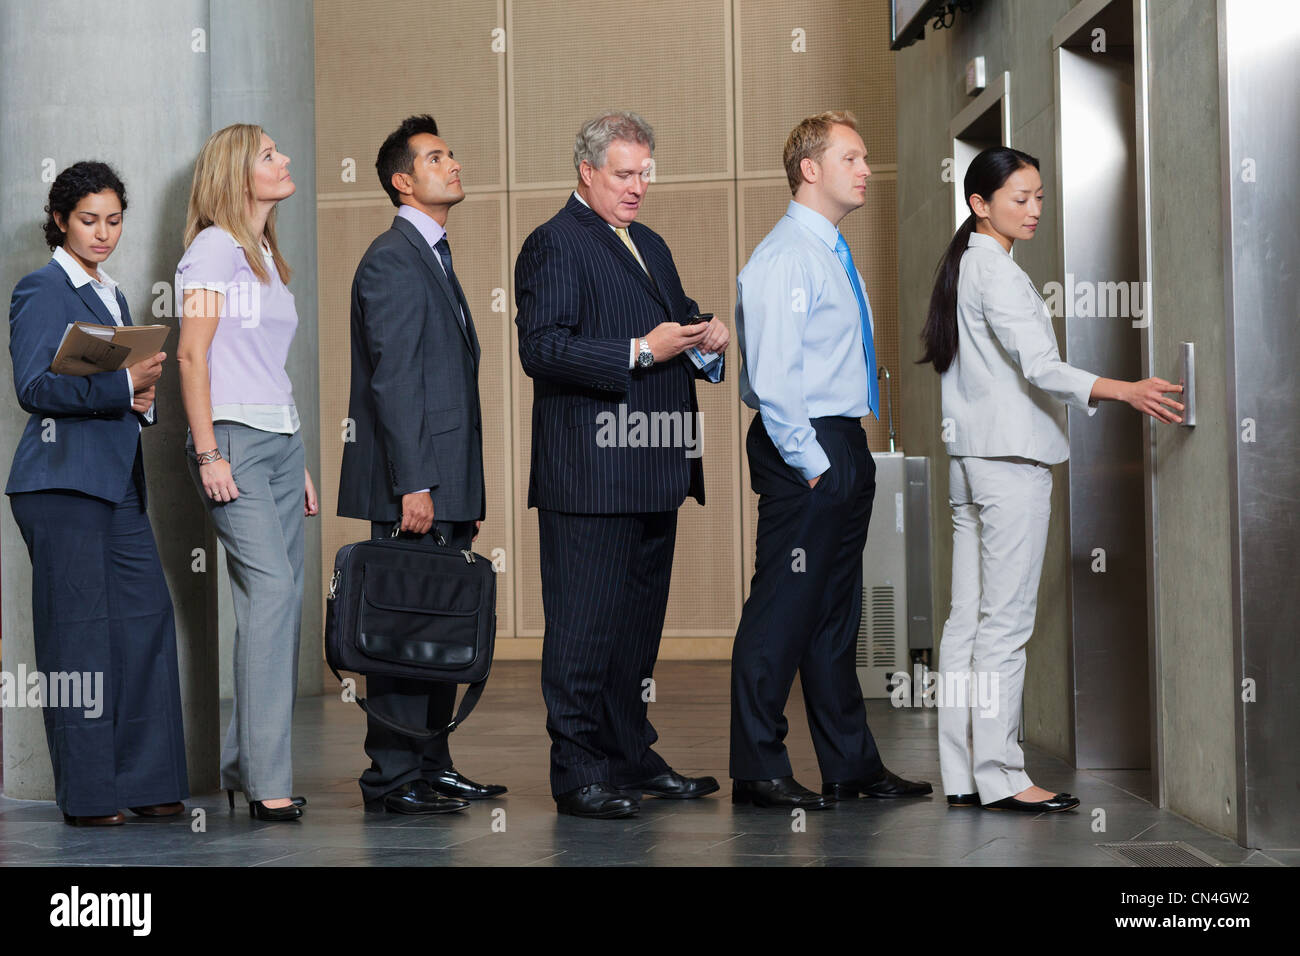 Businesspeople waiting in queue for elevator - Stock Image